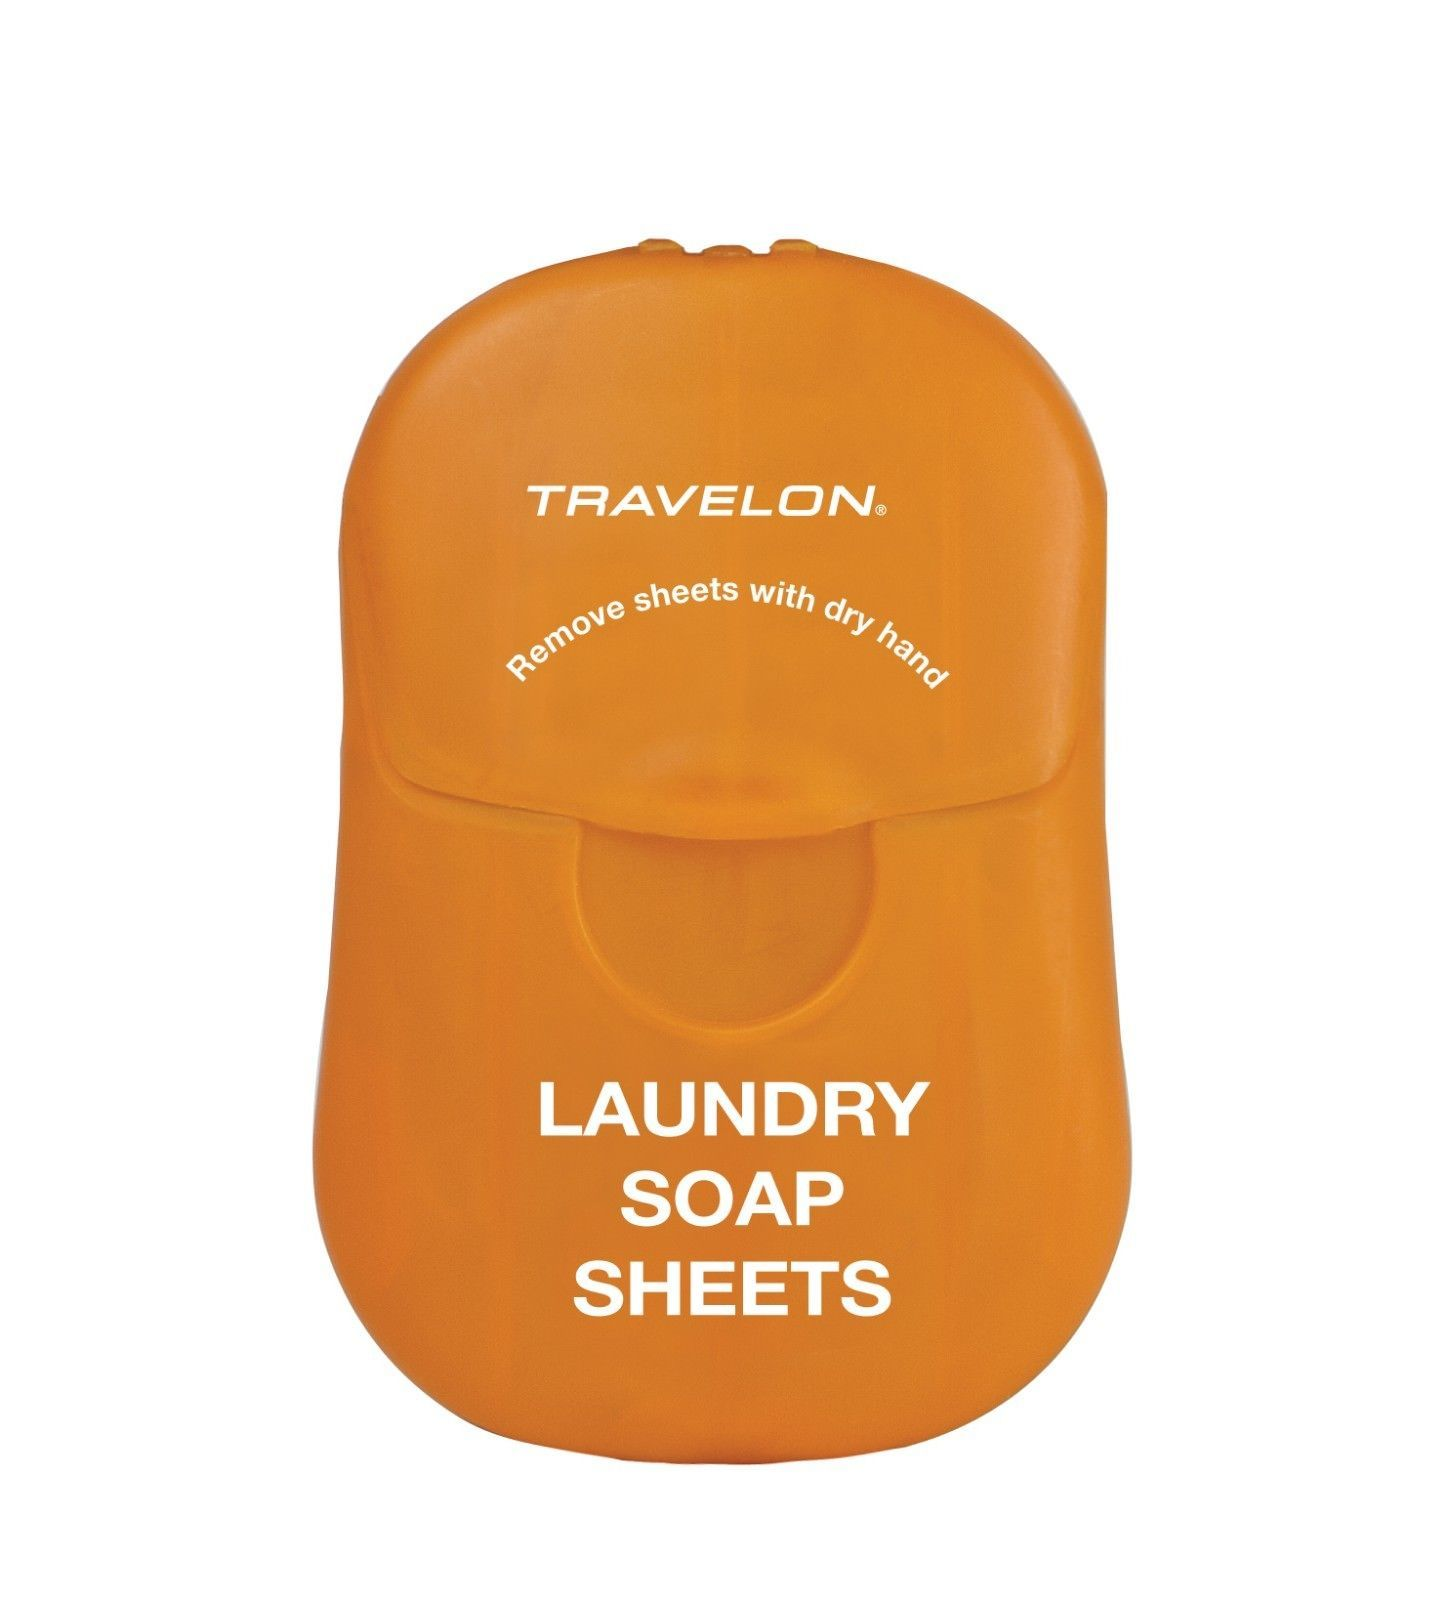 TRAVELON COMPACT SIZE TRAVEL LAUNDRY SOAP 50 SHEETS AIRLINE CARRY-ON COMPLIANT